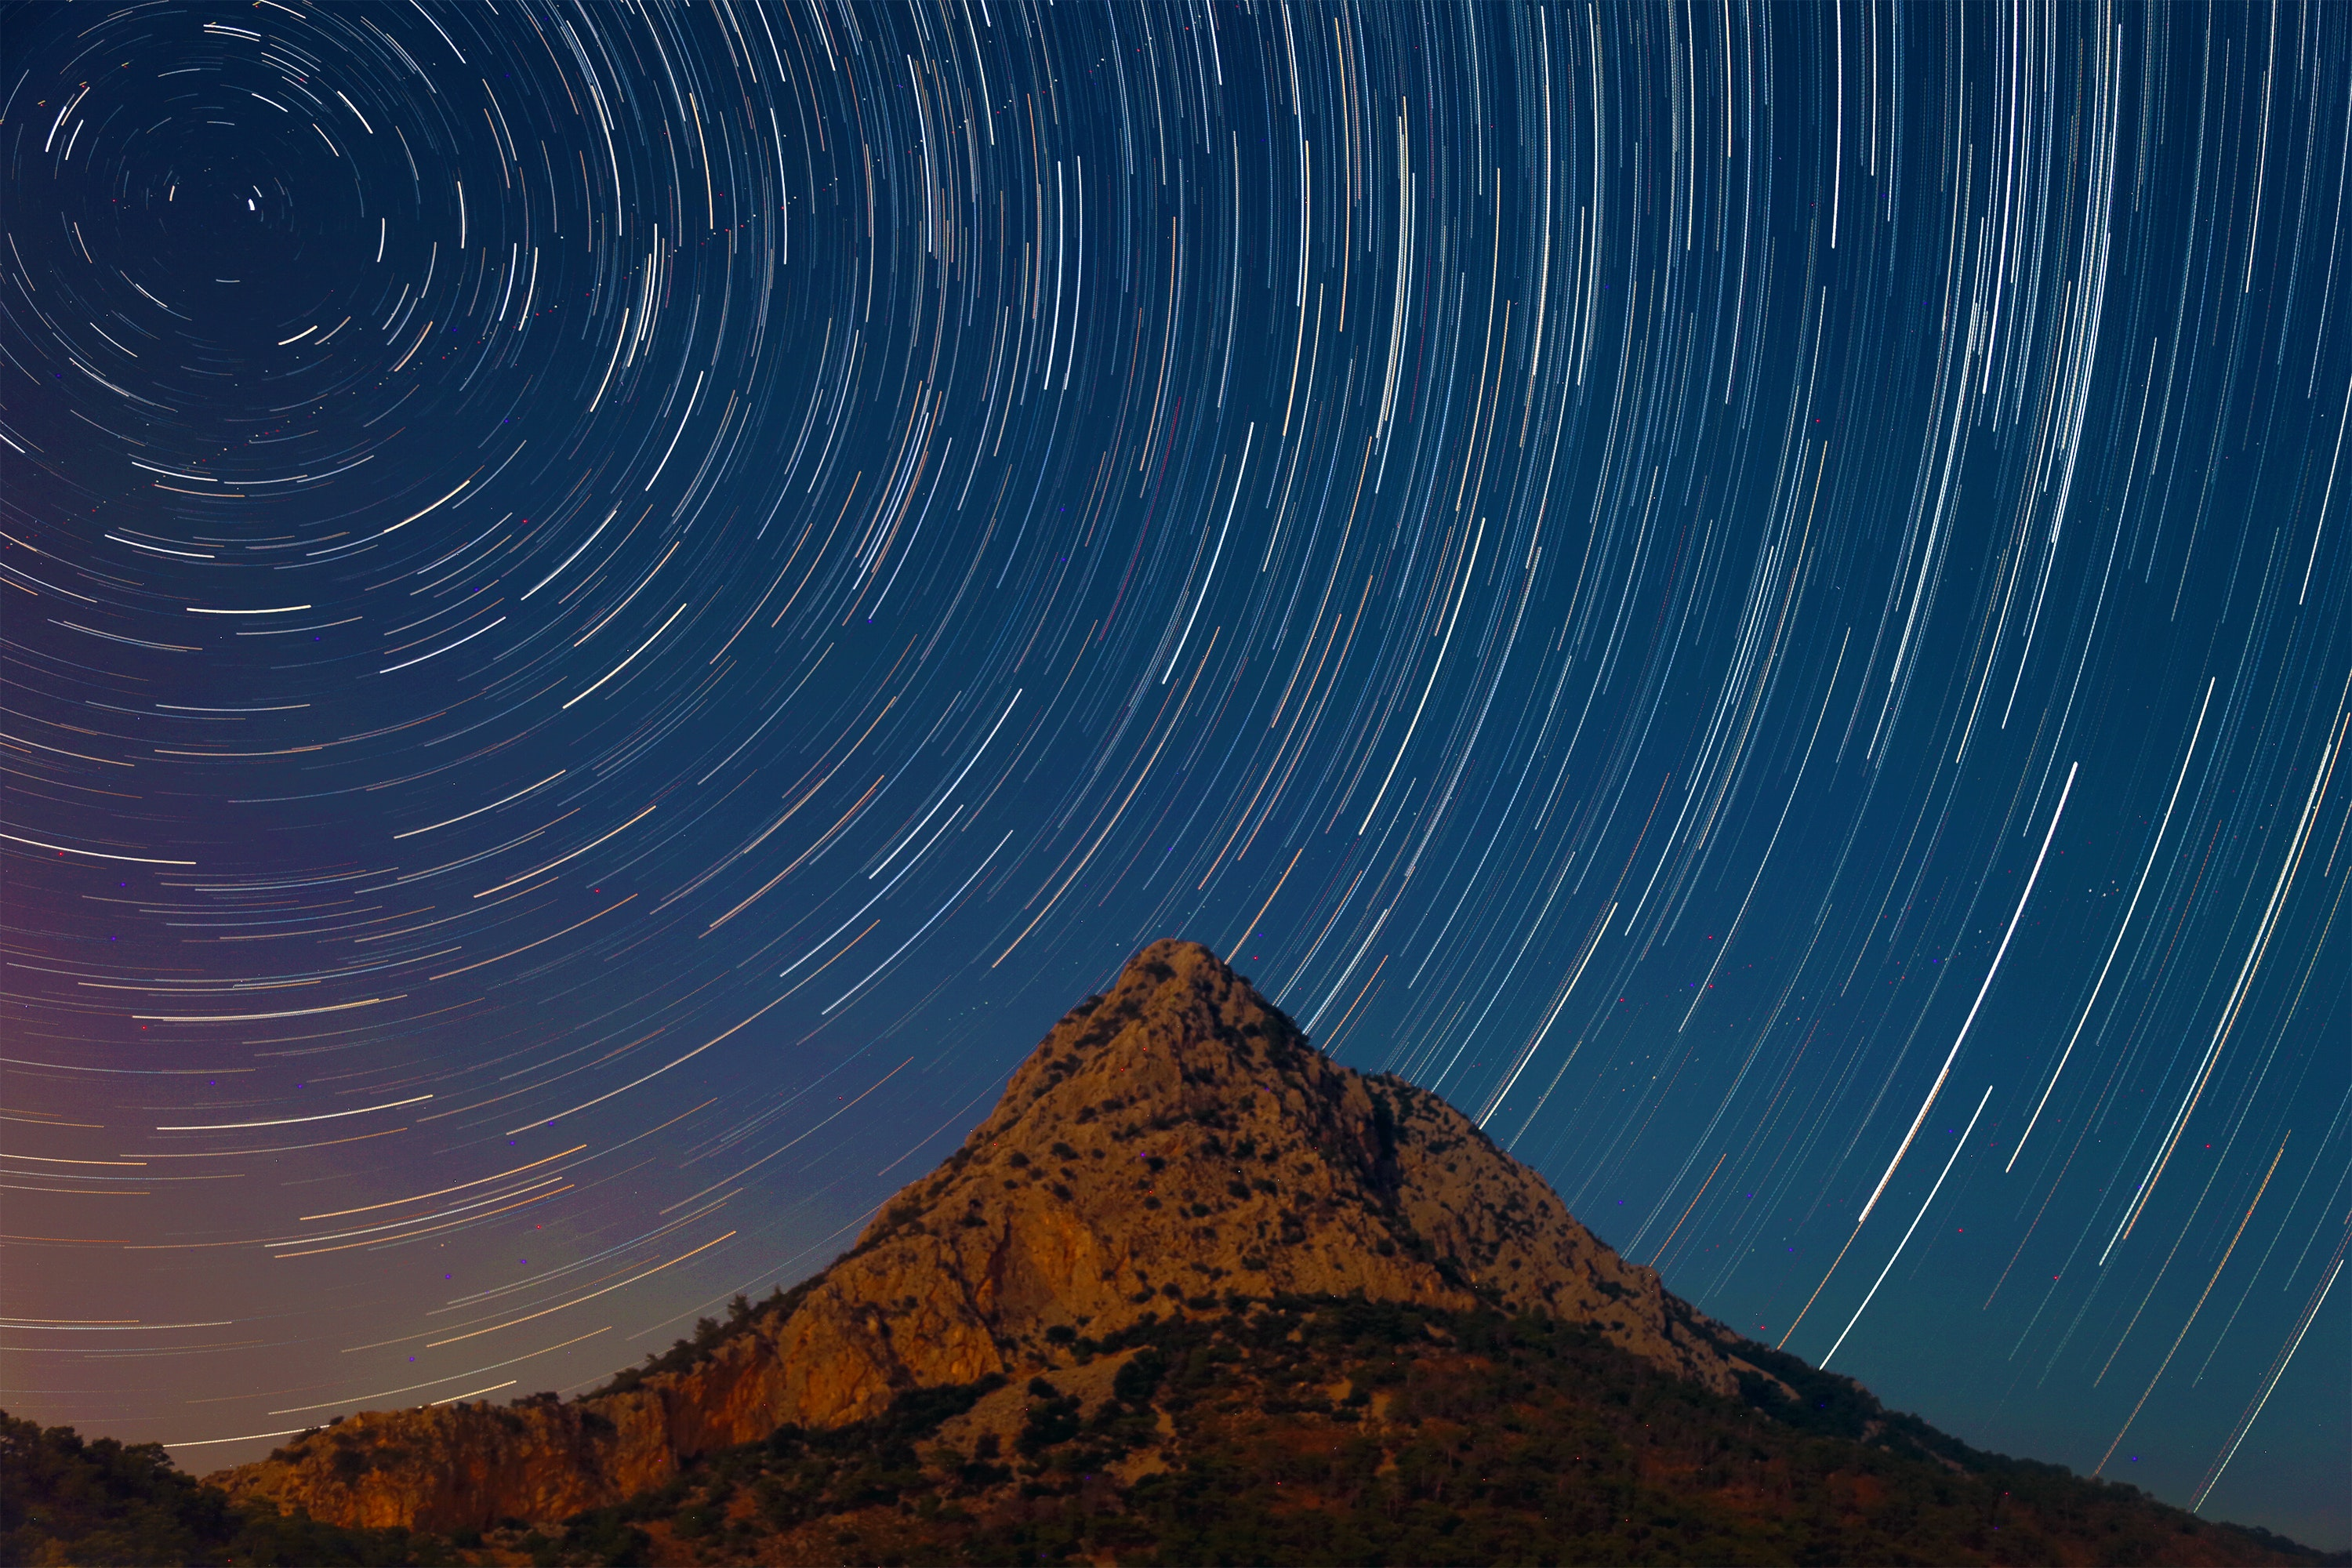 A starry sky in time-lapse mode